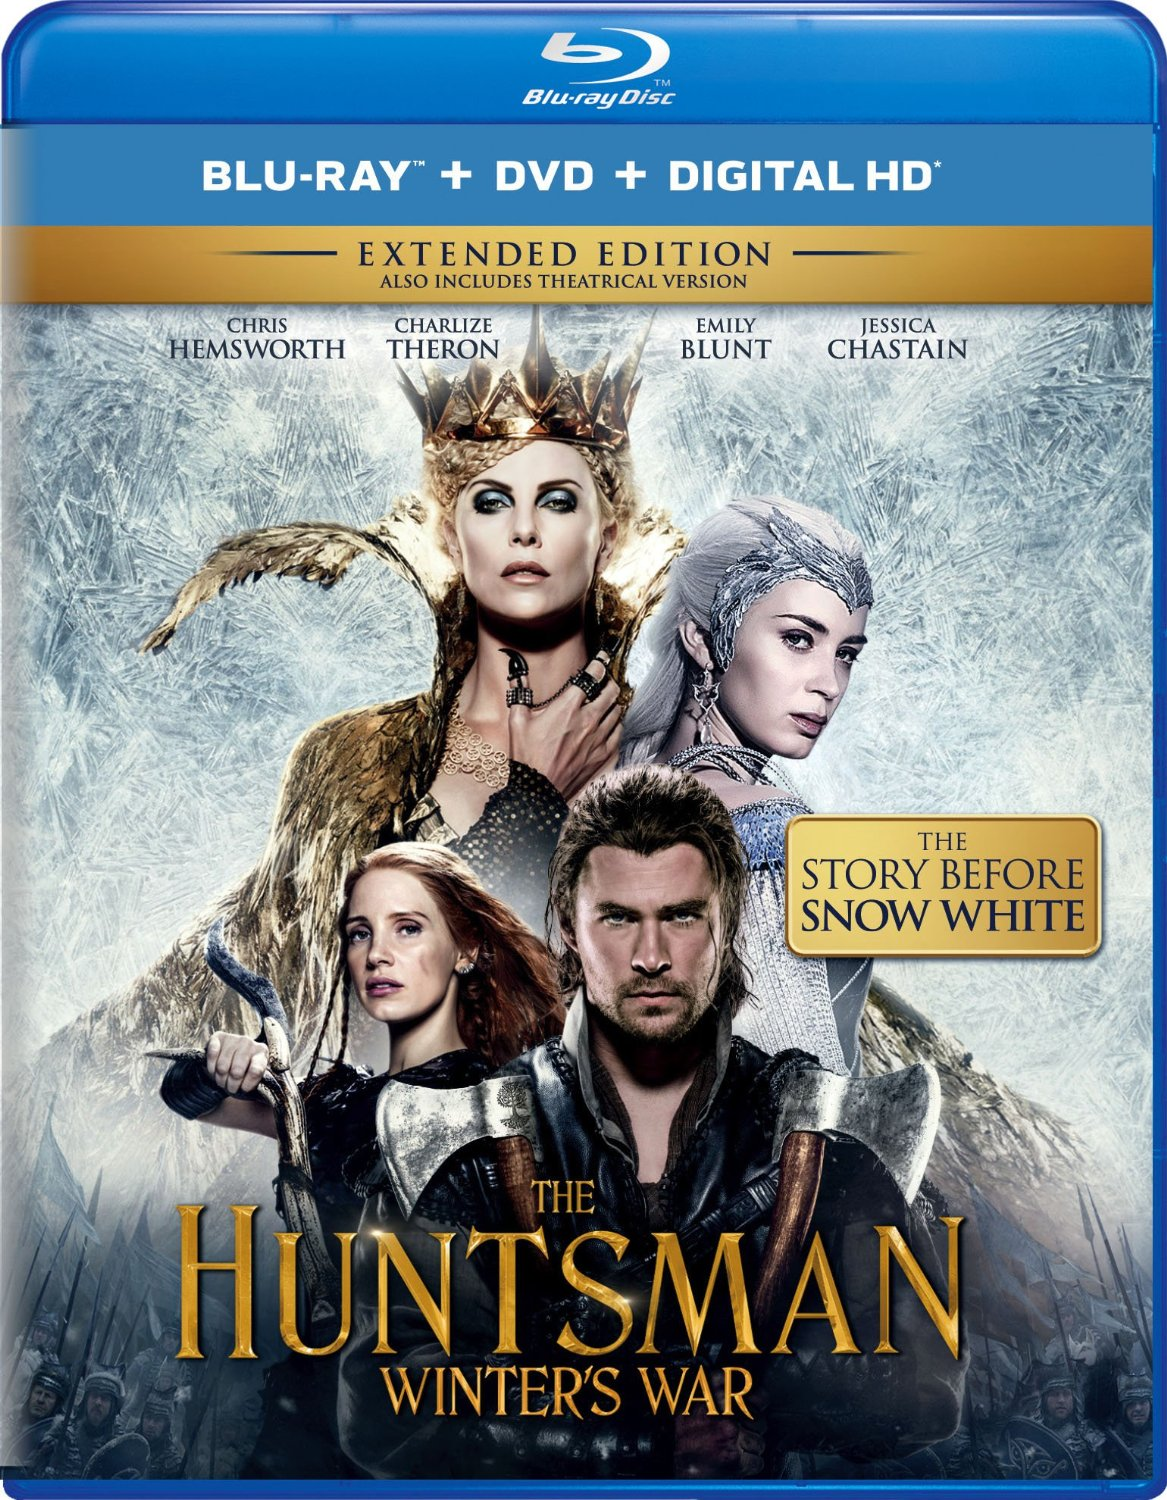 Snow White & The Huntsman [Movie] - The Huntsman: Winter's War - Extended Edition